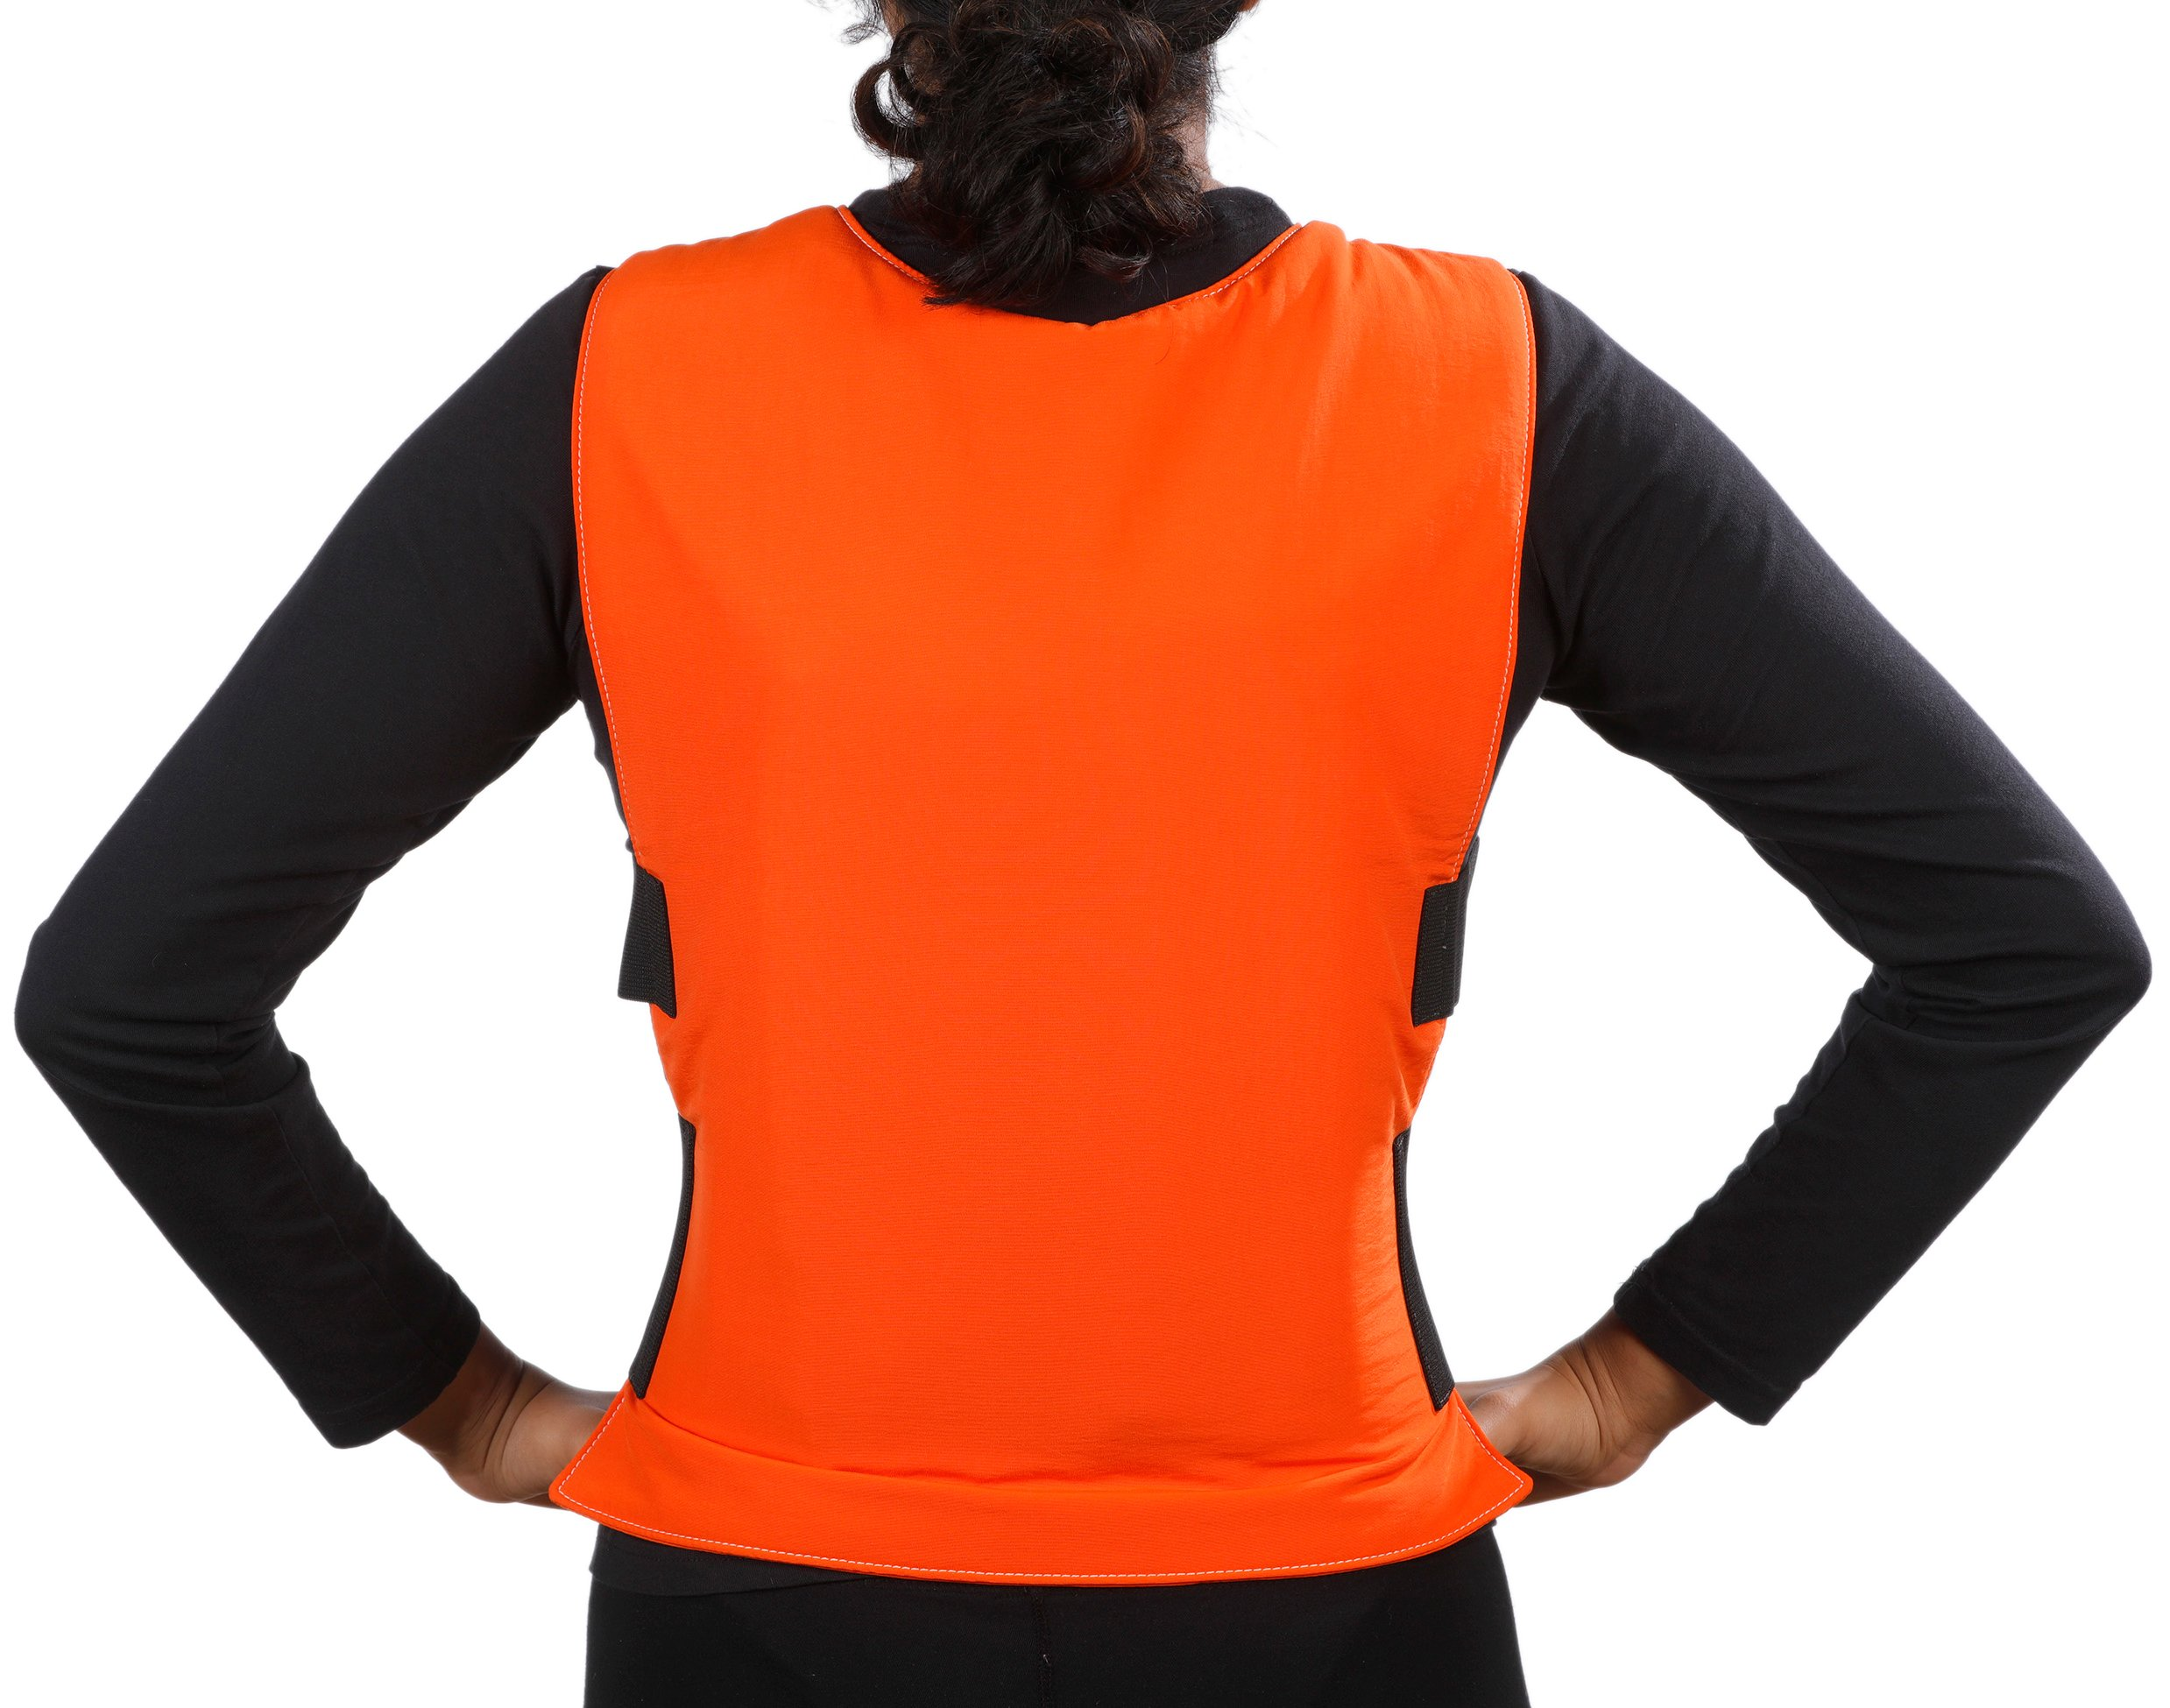 Glacier Tek Sports Cool Vest with Set of 8 Nontoxic Cooling Packs Orange by Glacier Tek (Image #2)